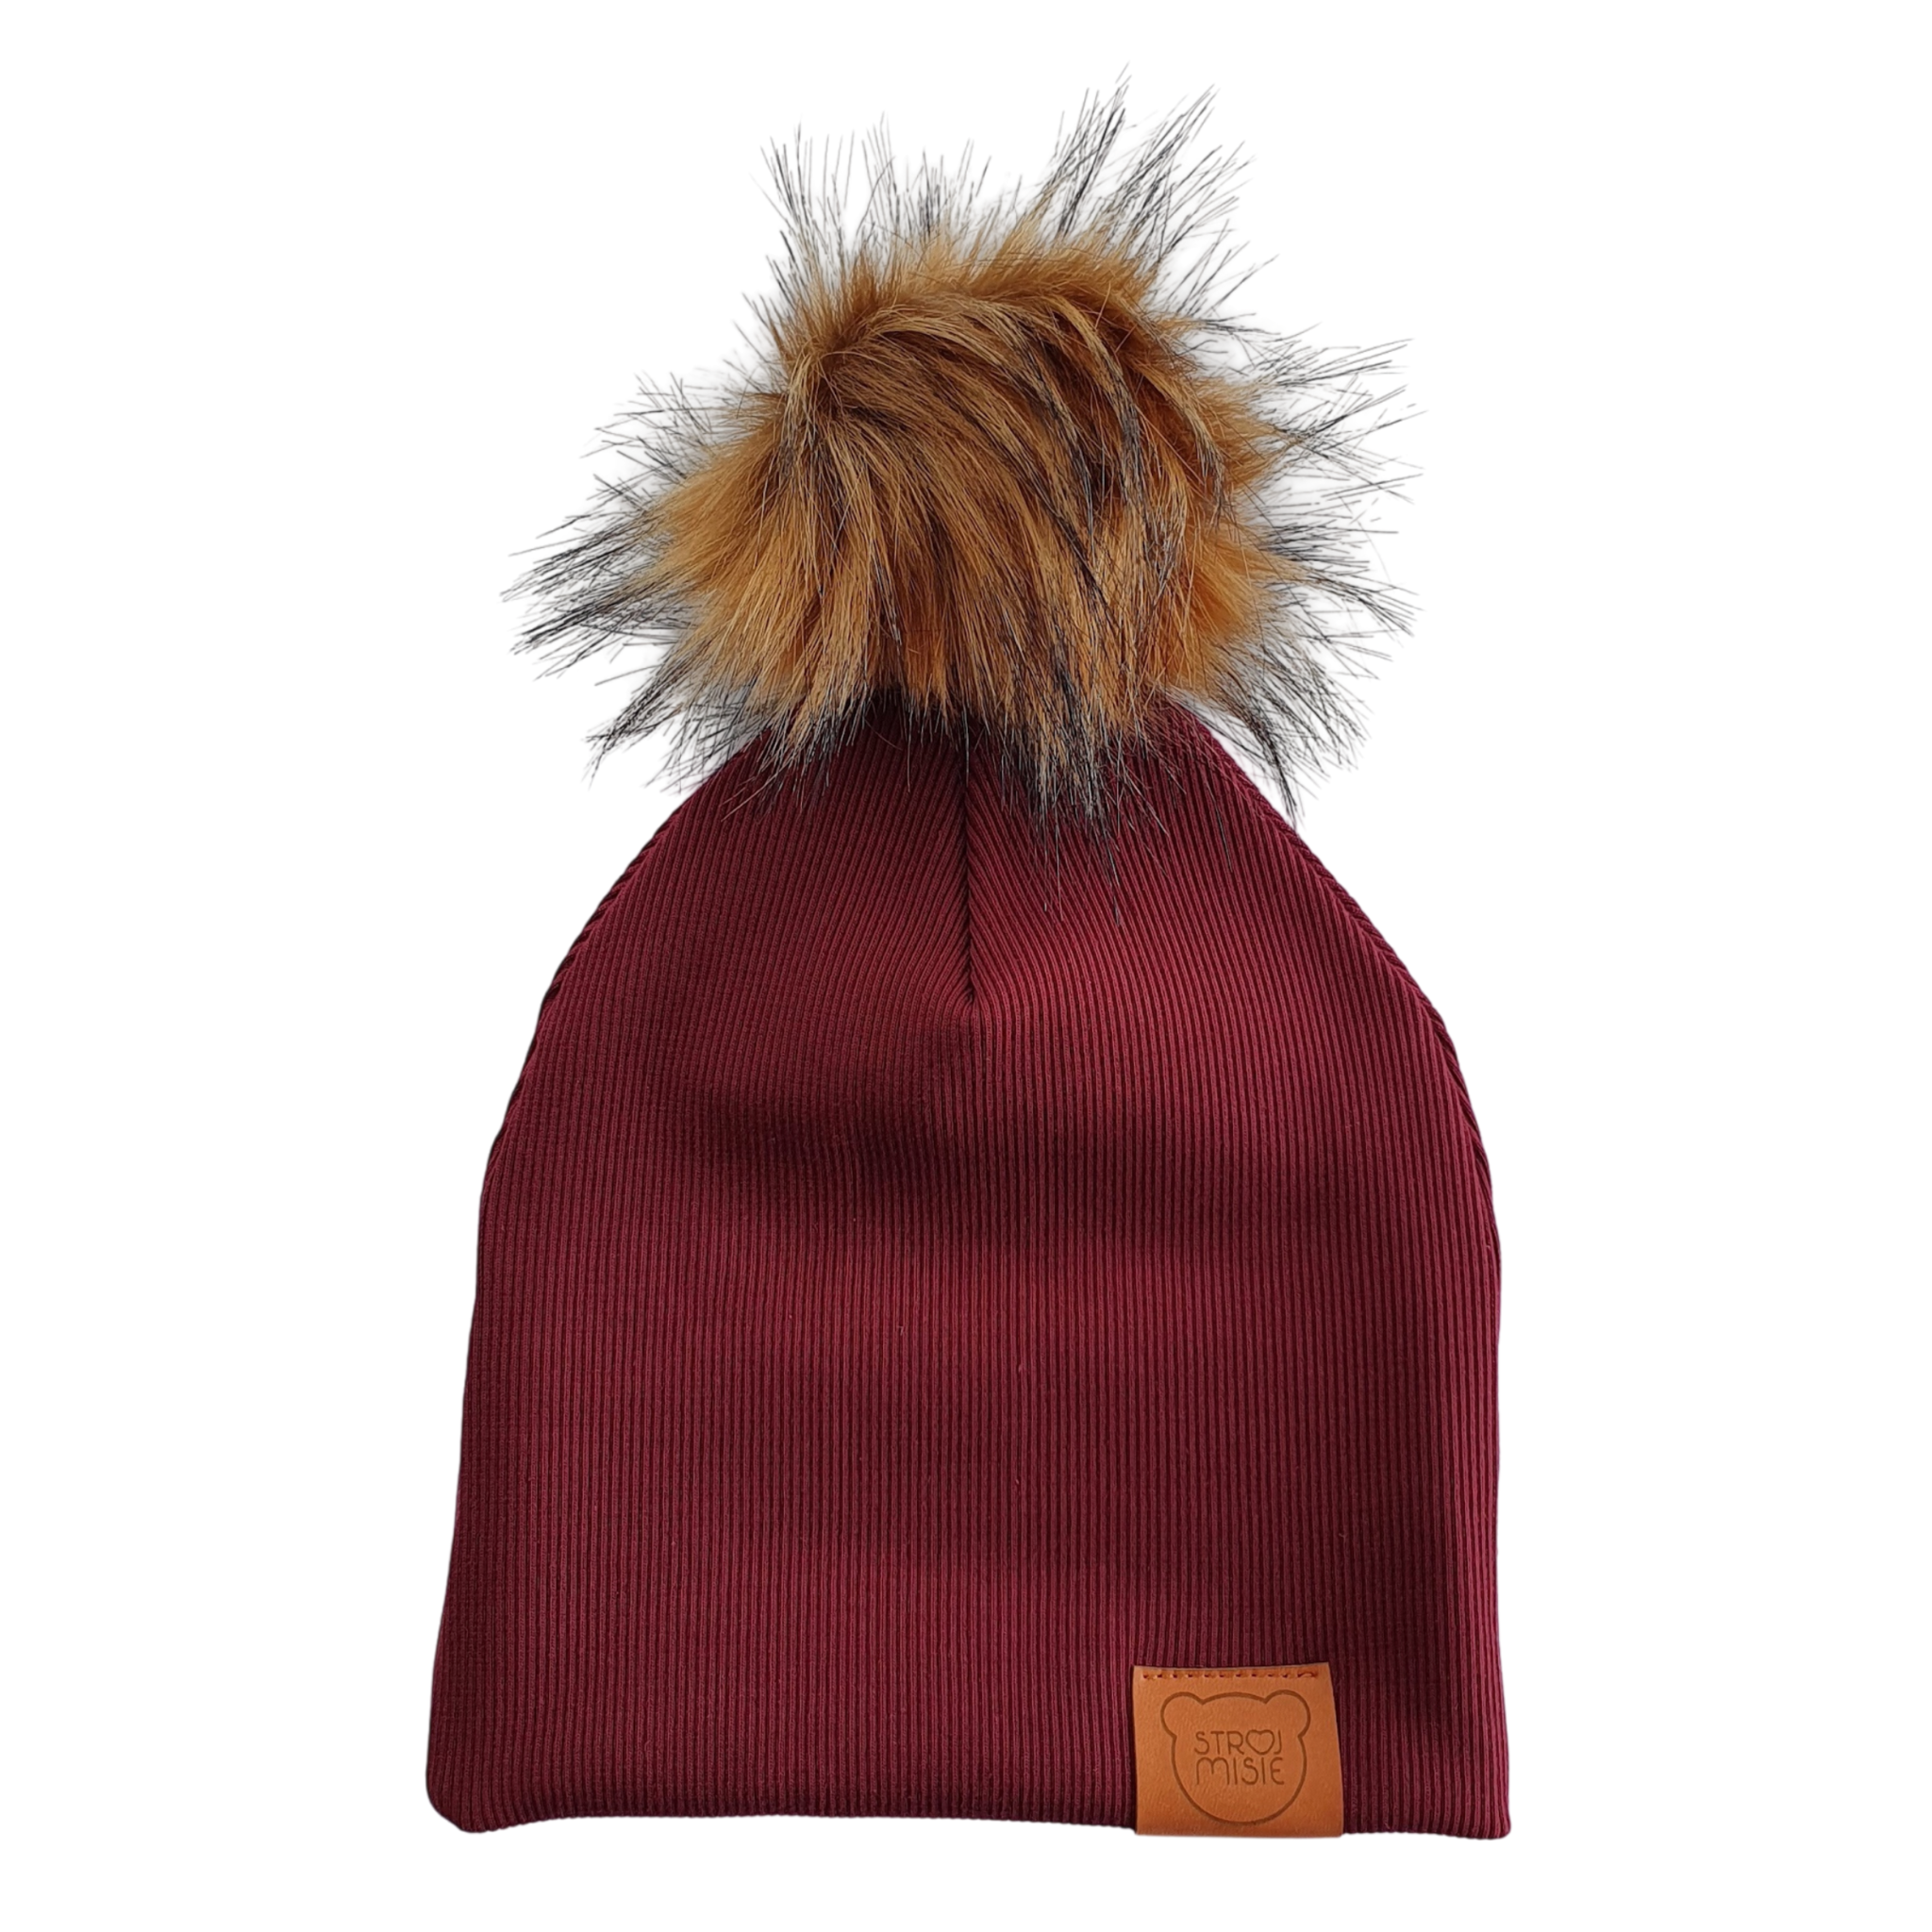 Strojmisie RED BEANIE WITH POM | KIDS HAT BORDEAUX | BABY HAT BORDEAUX RED